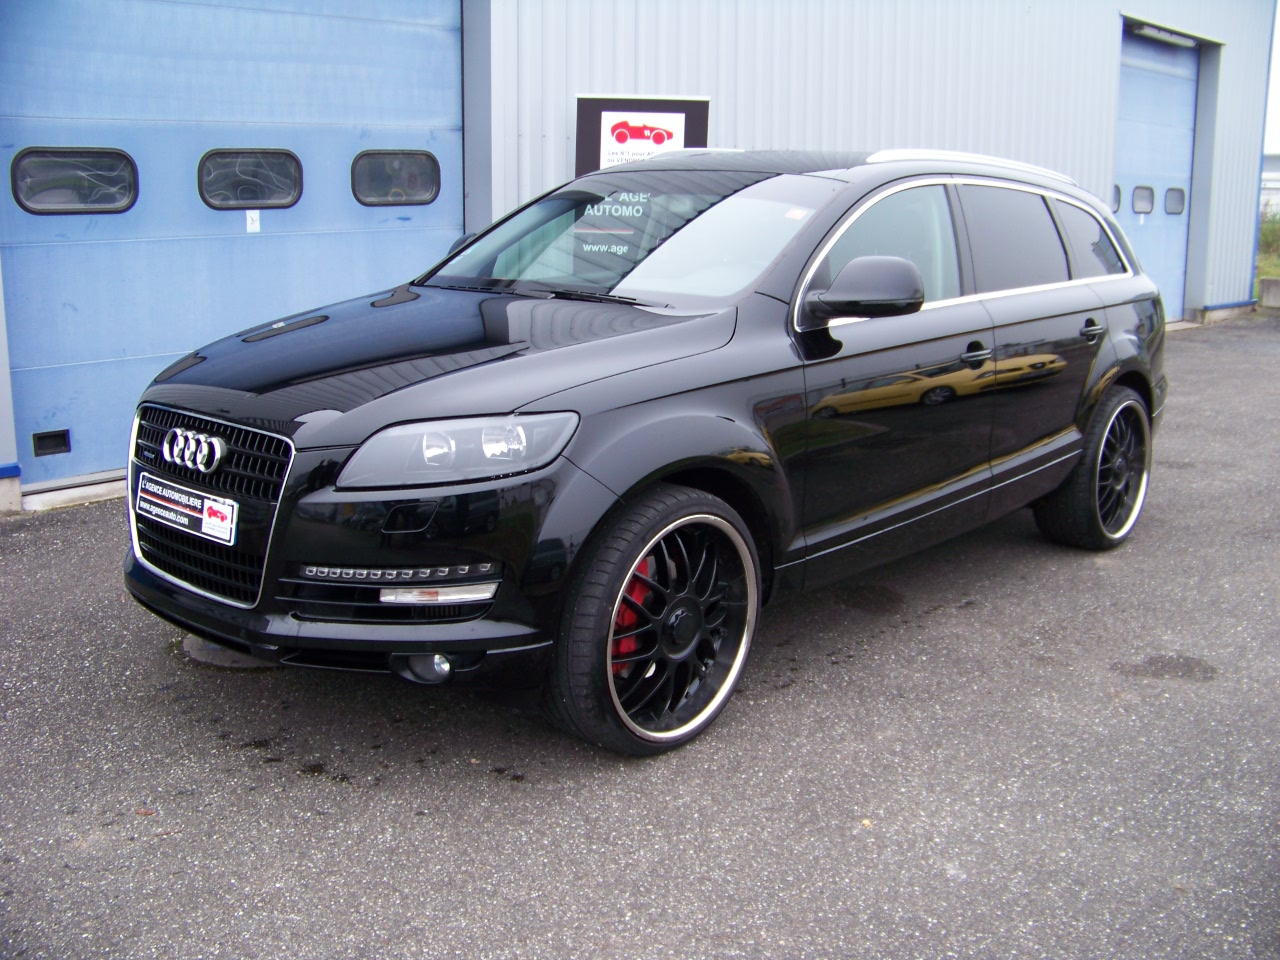 audi q7 3 0l v6 tdi quattro tiptronic t l dvd jantes 23 occasion strasbourg pas cher. Black Bedroom Furniture Sets. Home Design Ideas